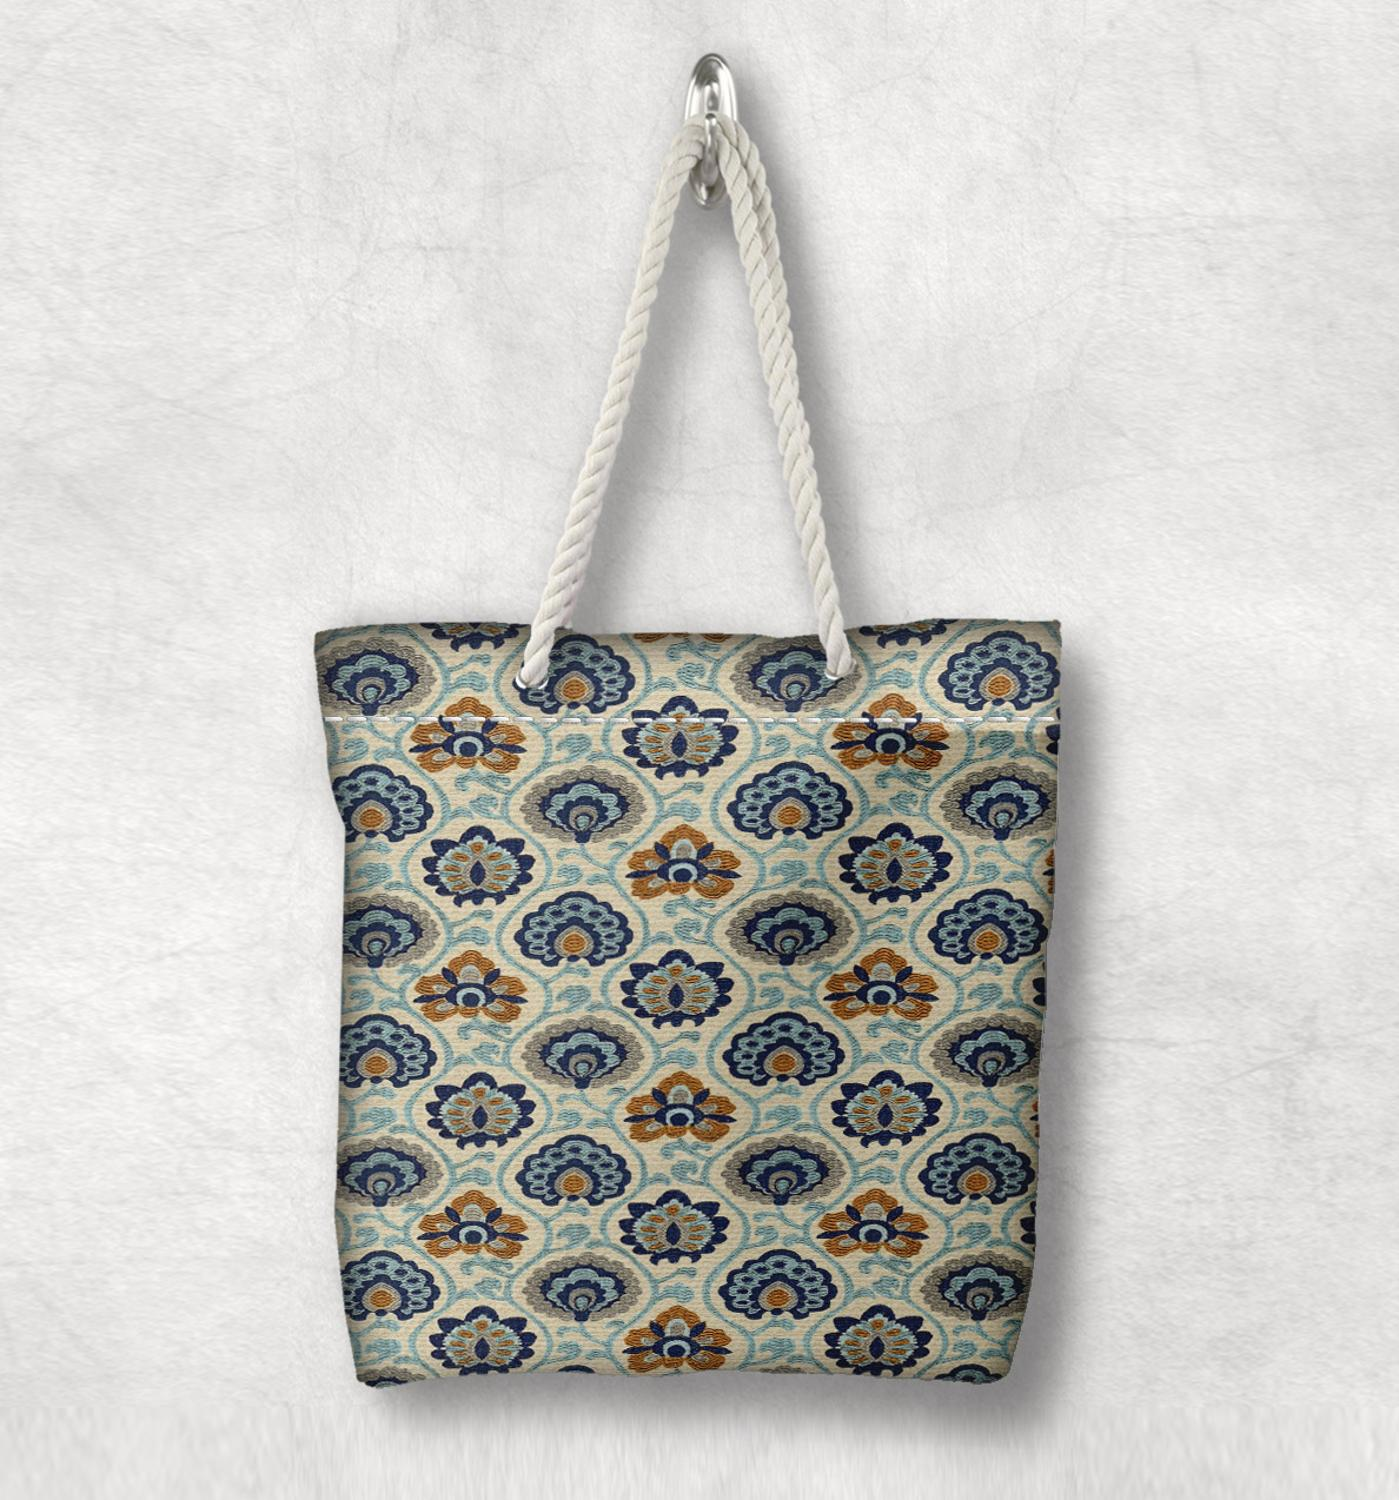 Else Blue Green Floral Anatolia Vintage Fashion White Rope Handle Canvas Bag Cotton Canvas Zippered Tote Bag Shoulder Bag